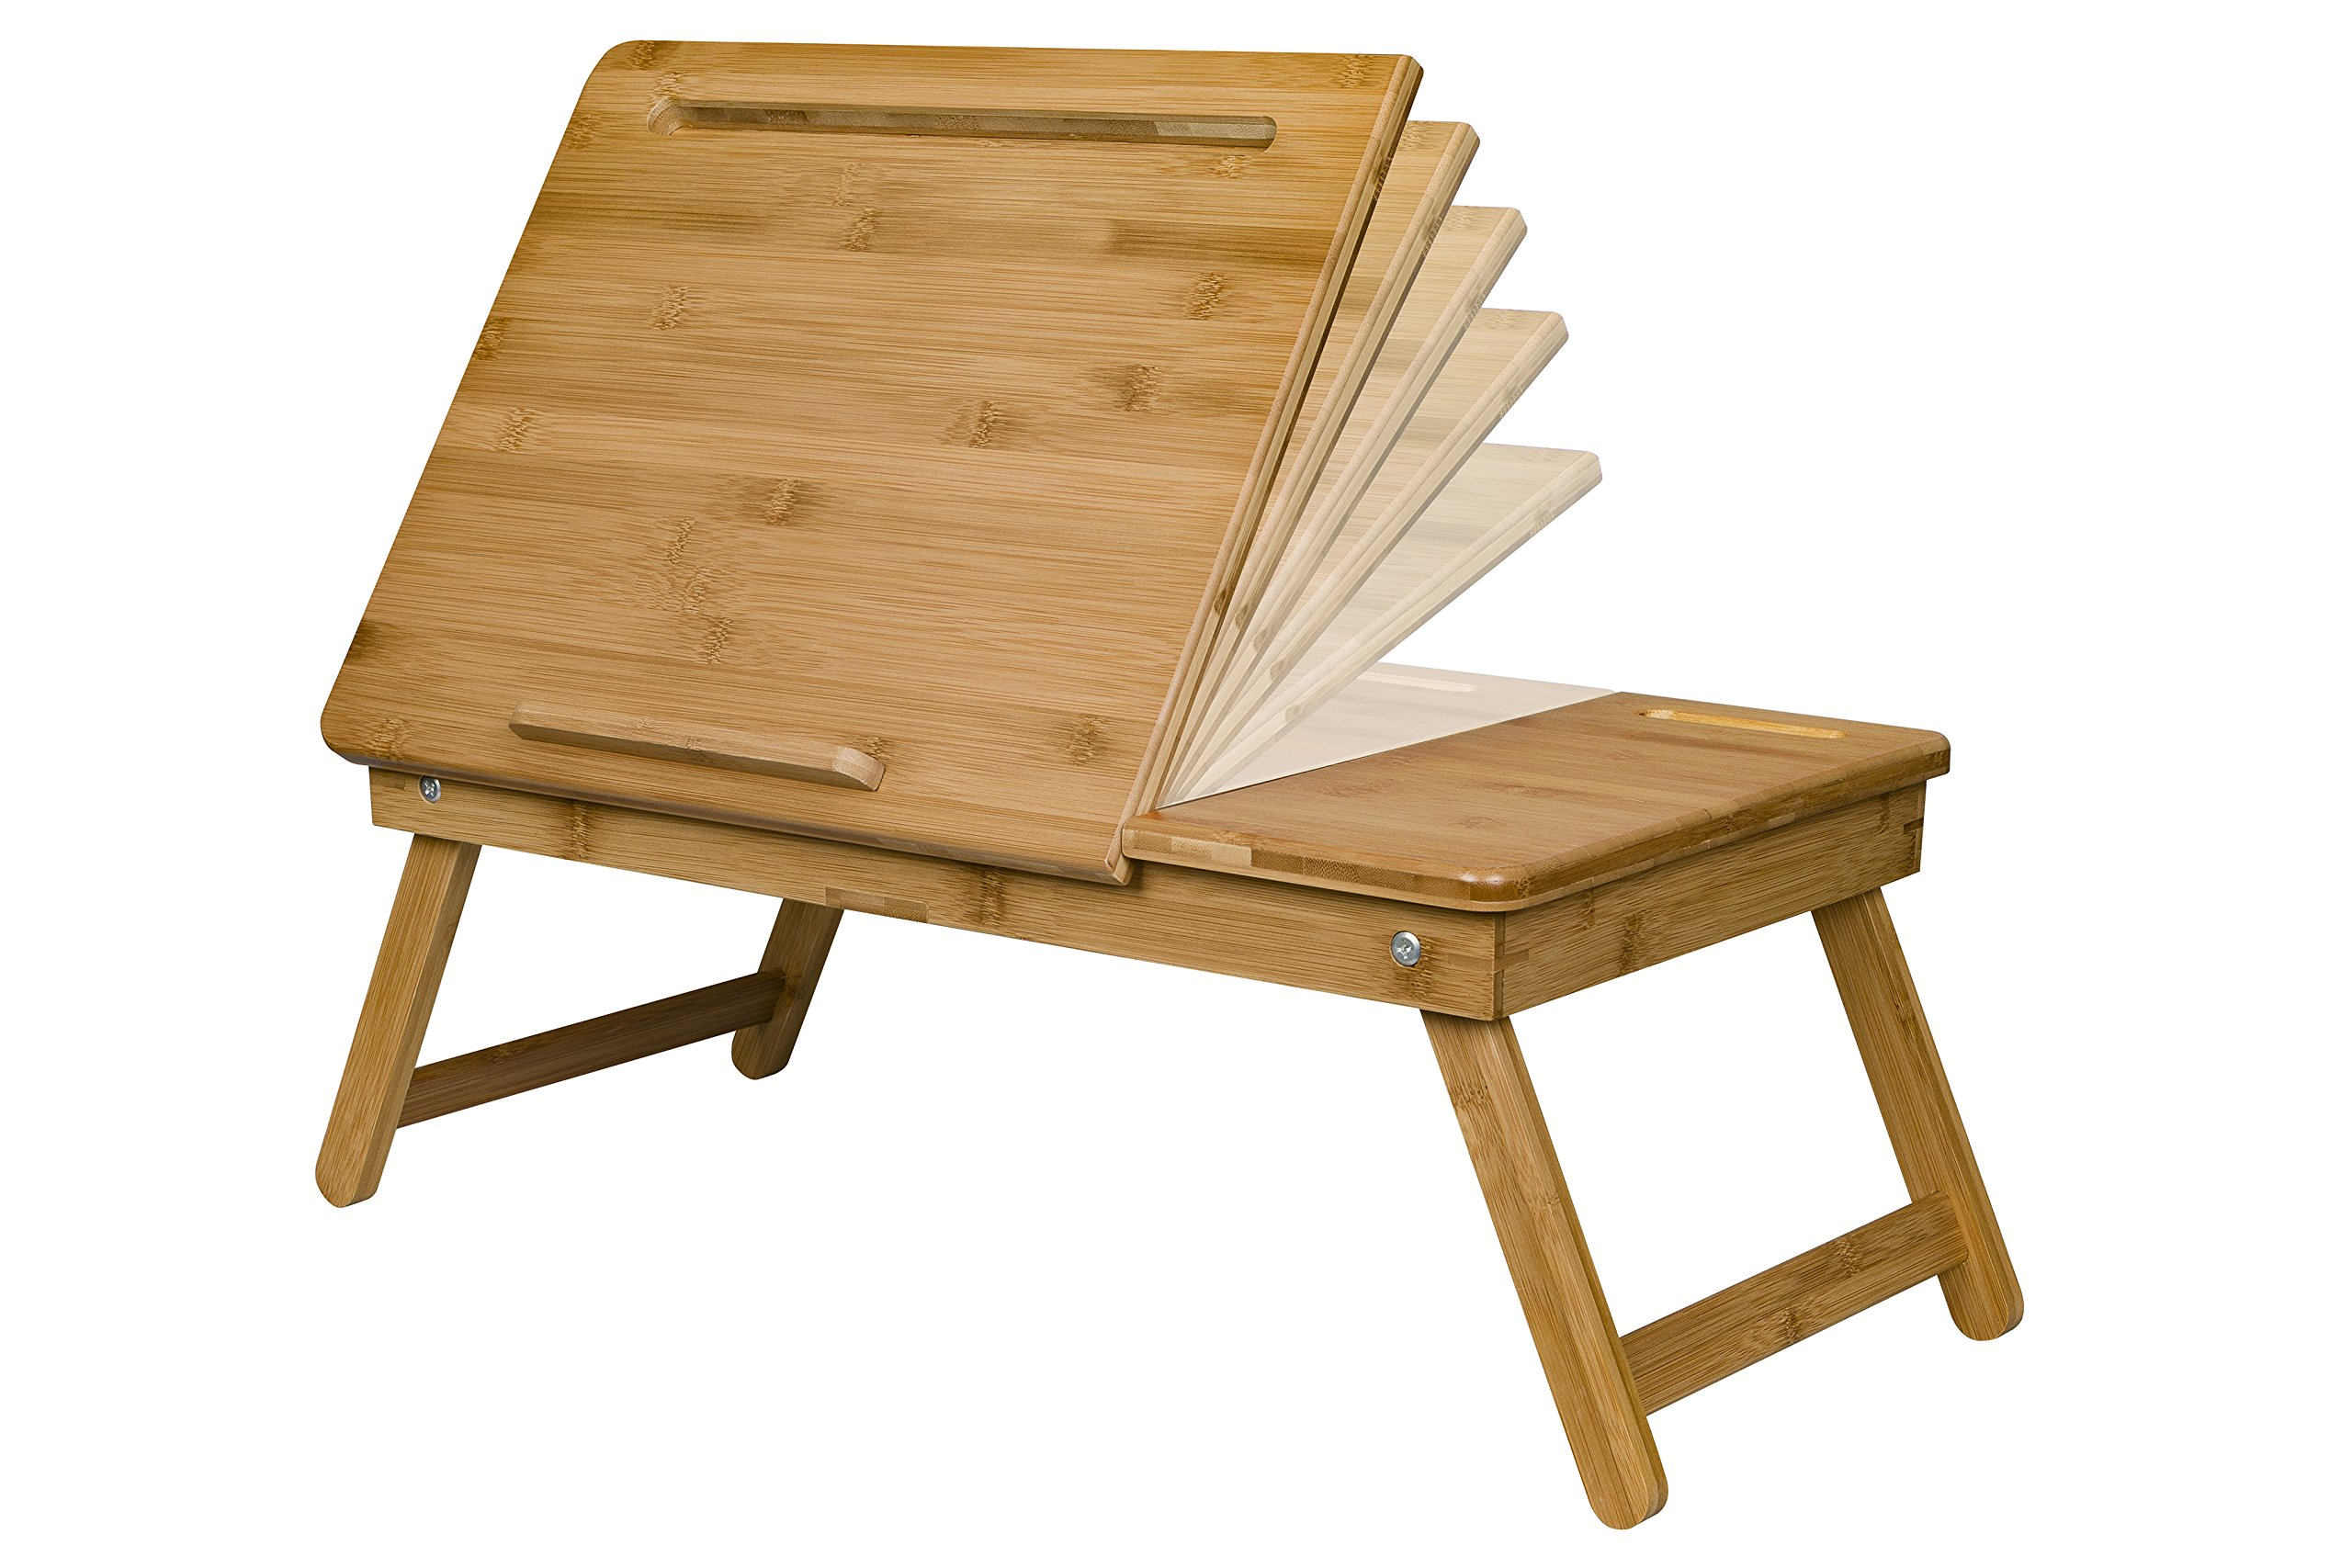 LapGear Safety-Tilt Laptop Table with phone slot - Natural Bamboo (Fits up to 12.9'' Tablet/17.3'' Laptop)